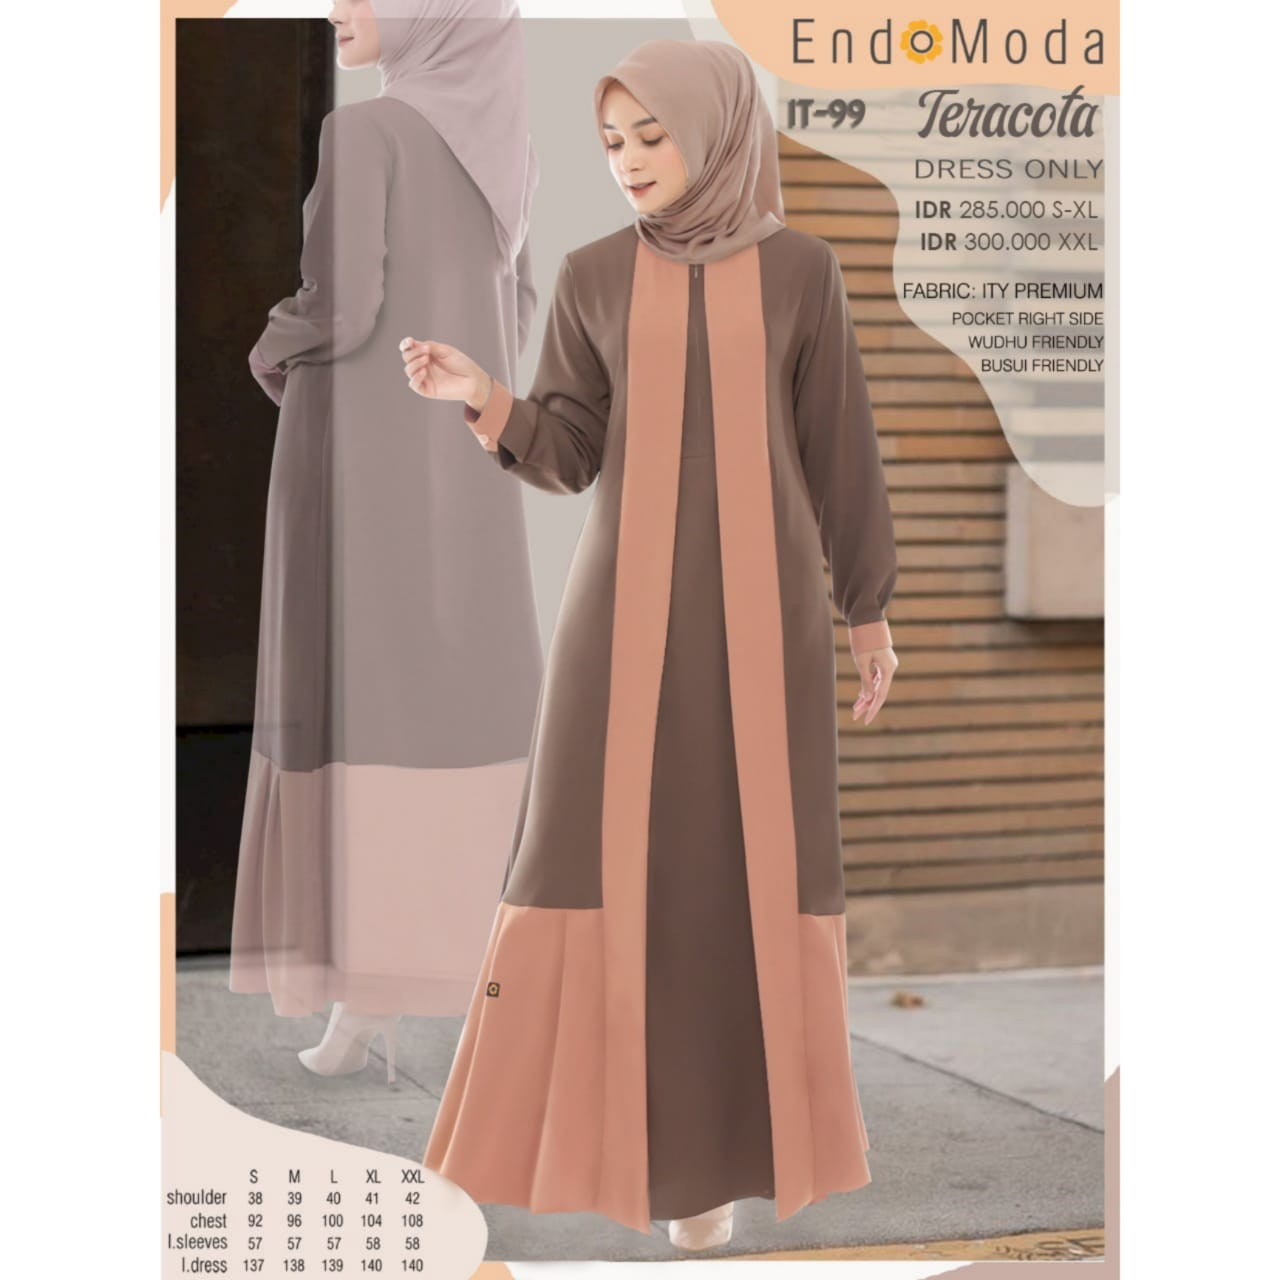 Gamis Endomoda IT 99 Teracotta